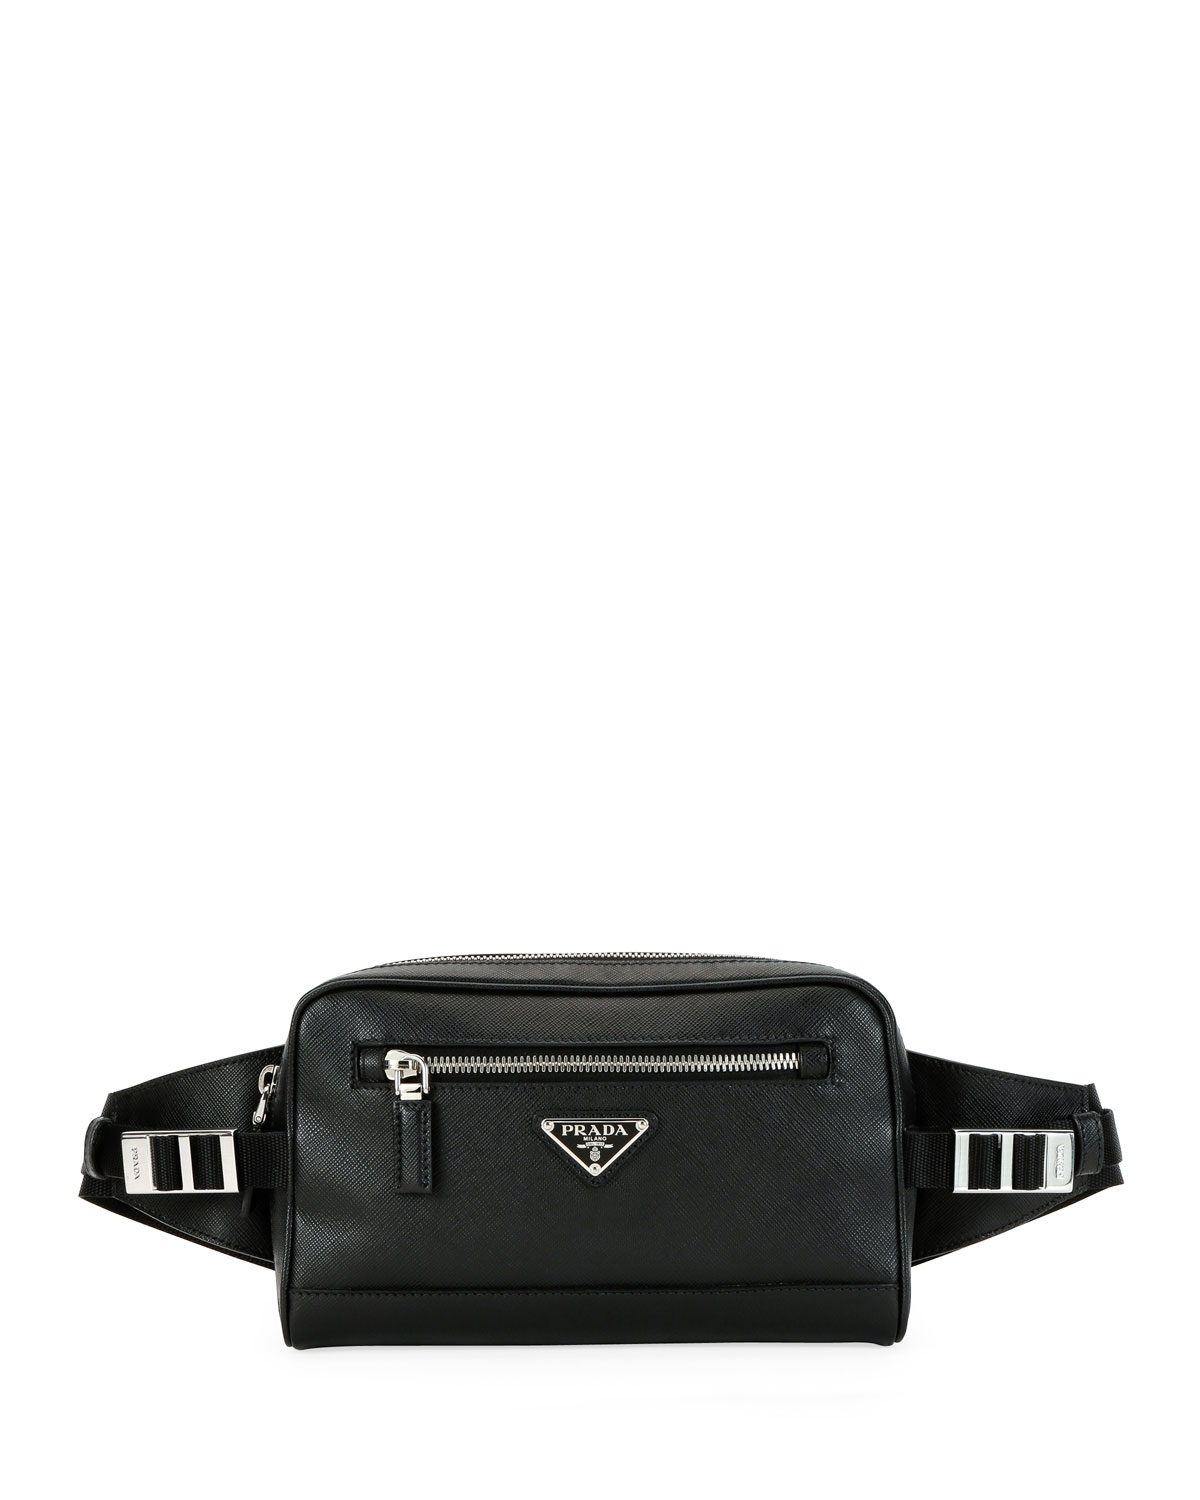 06084eac9a50 Prada Men s Saffiano Leather Travel Belt Bag Fanny Pack